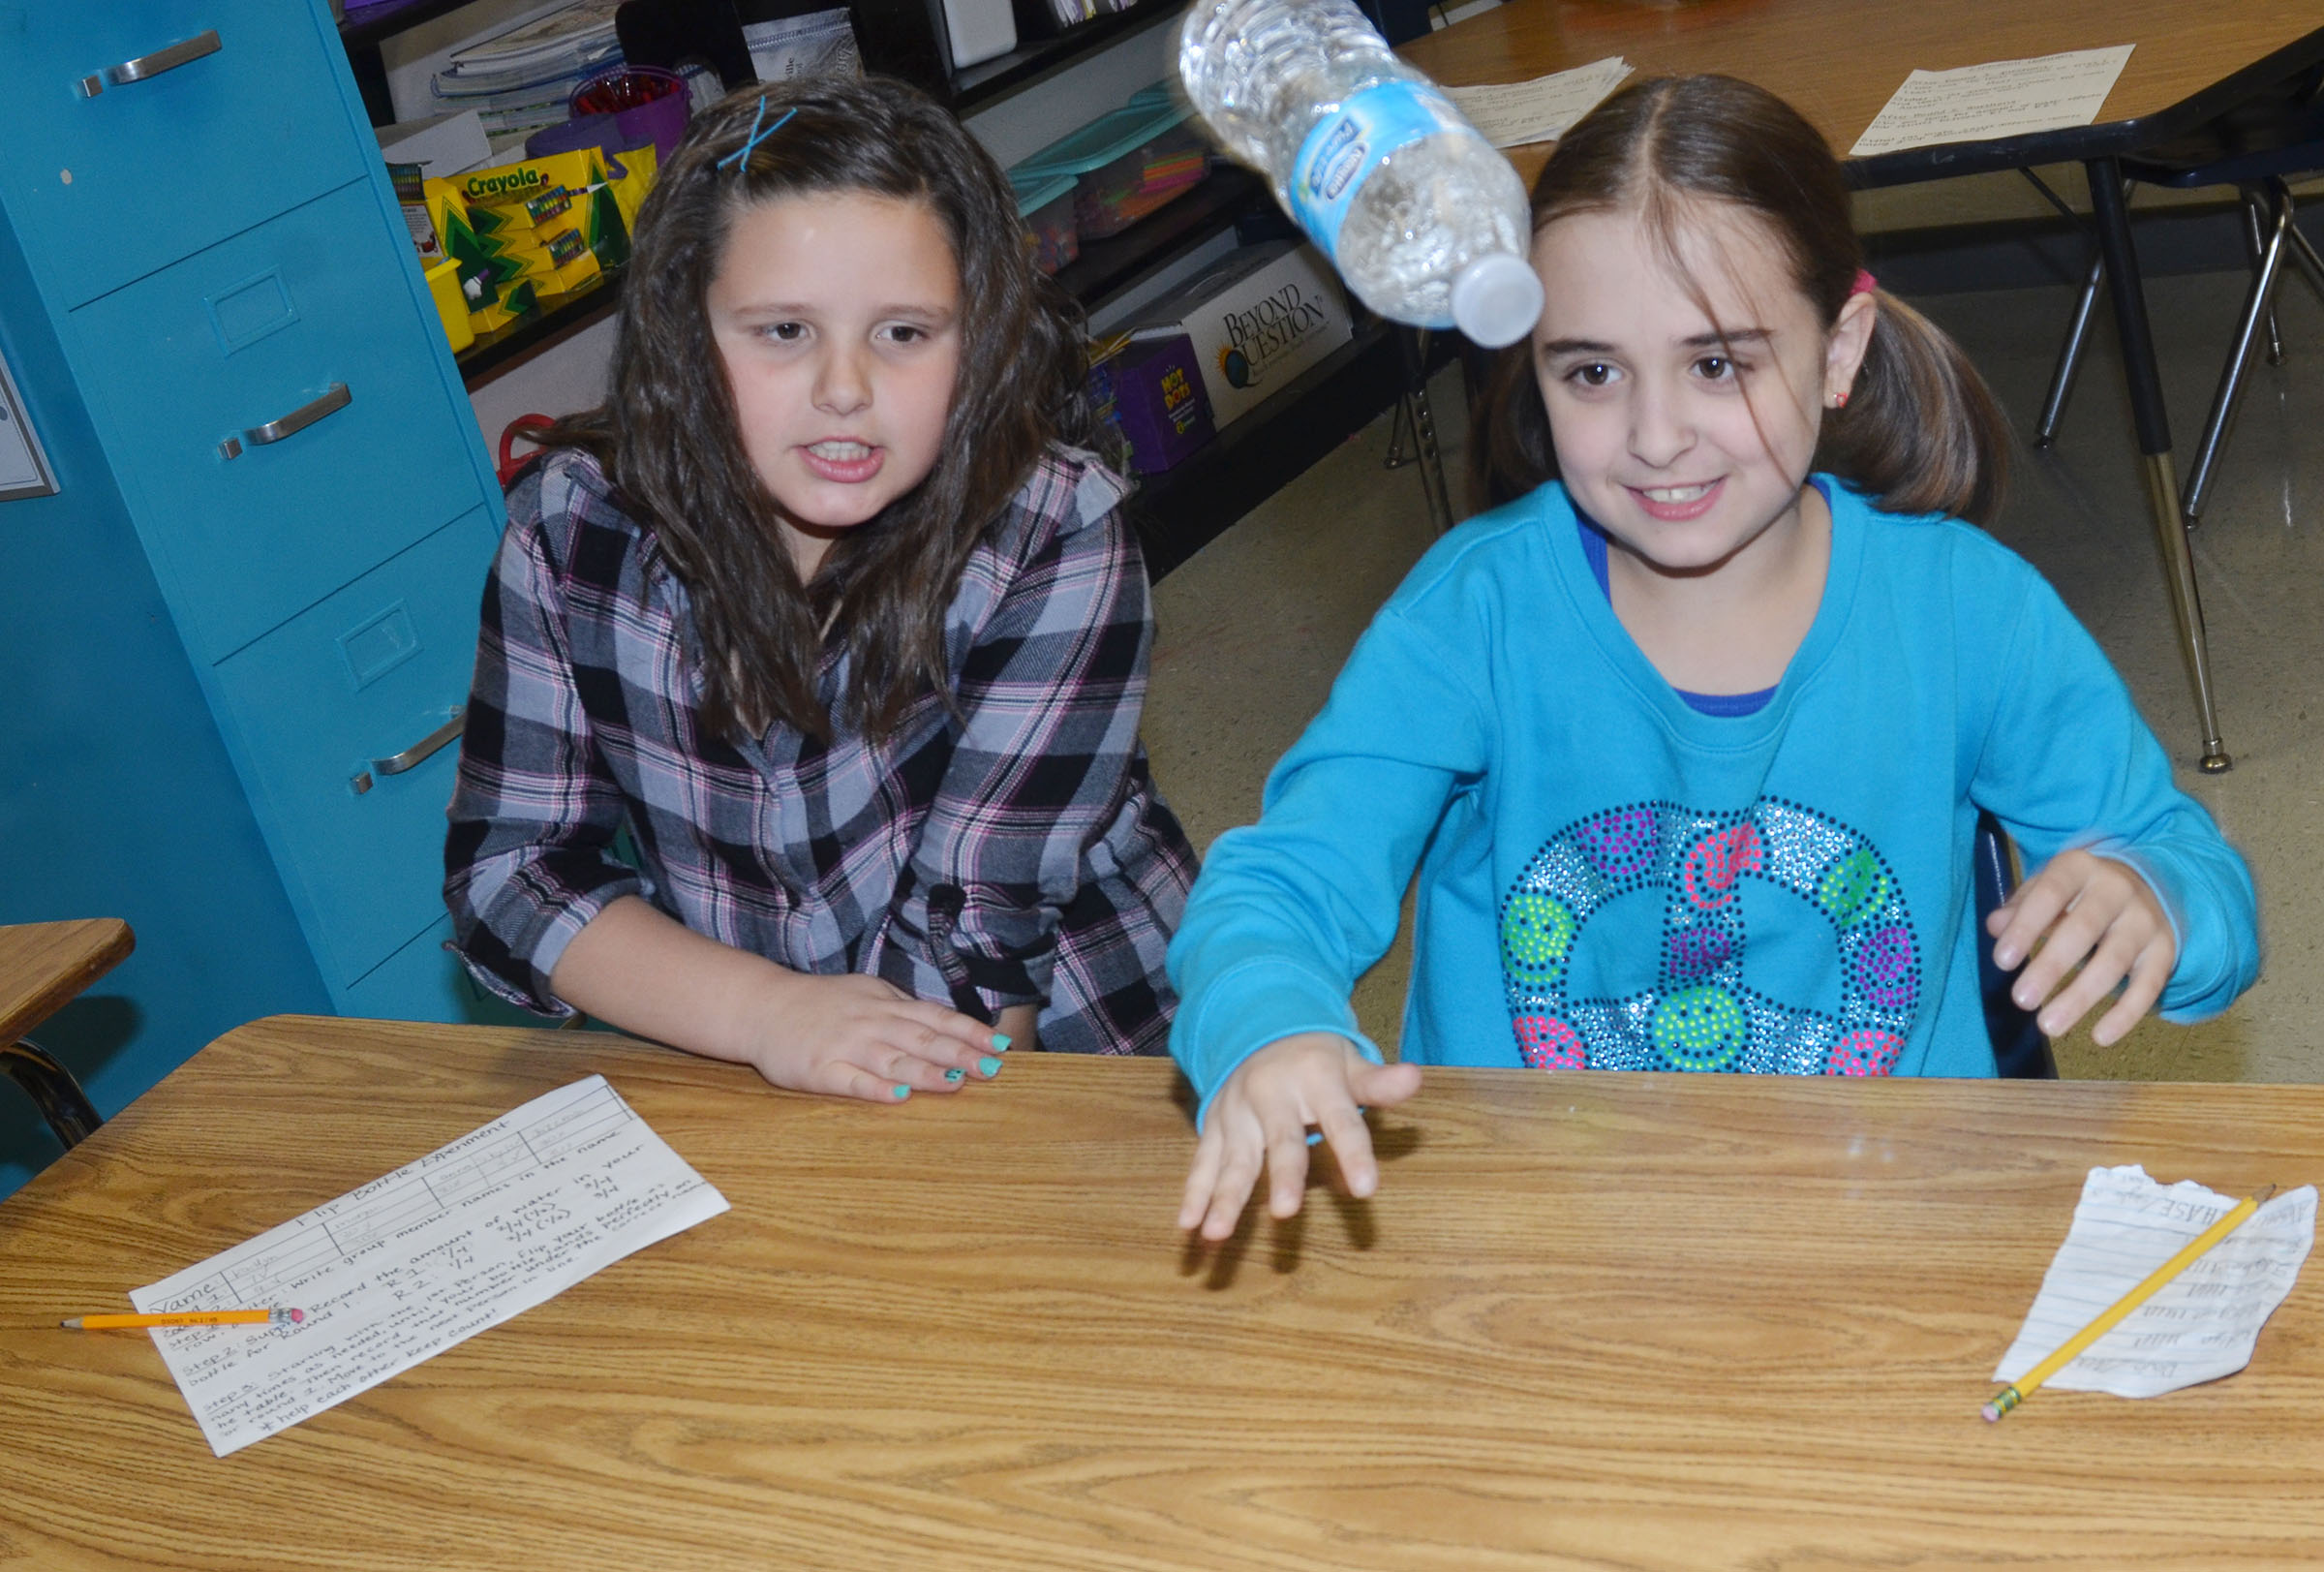 CMS fourth-grader Anna Floyd flips her water bottle, as classmate Kaitlyn Keith watches.